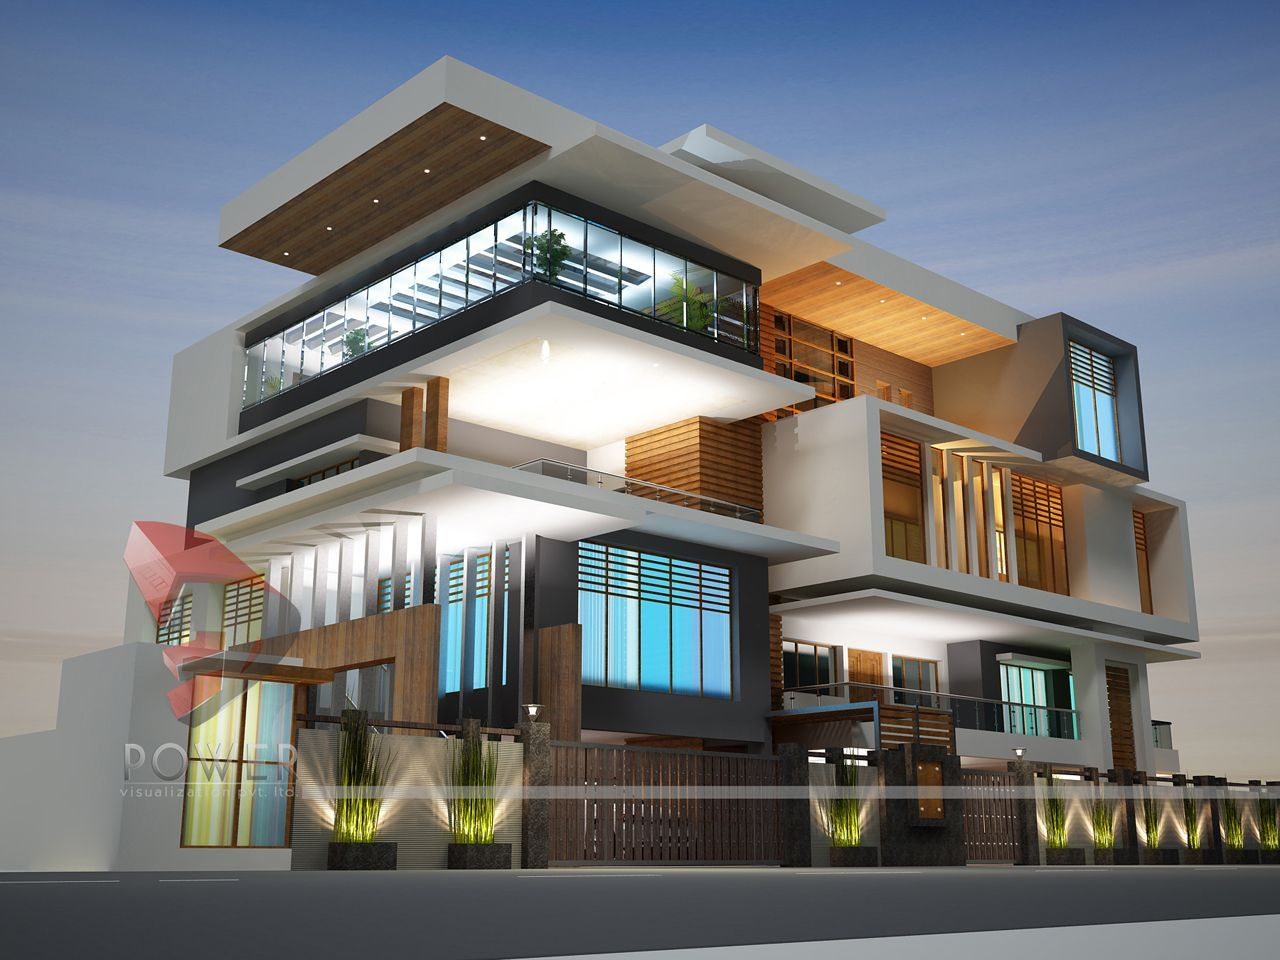 Modern house design in india architecture india modern for Best architect house designs